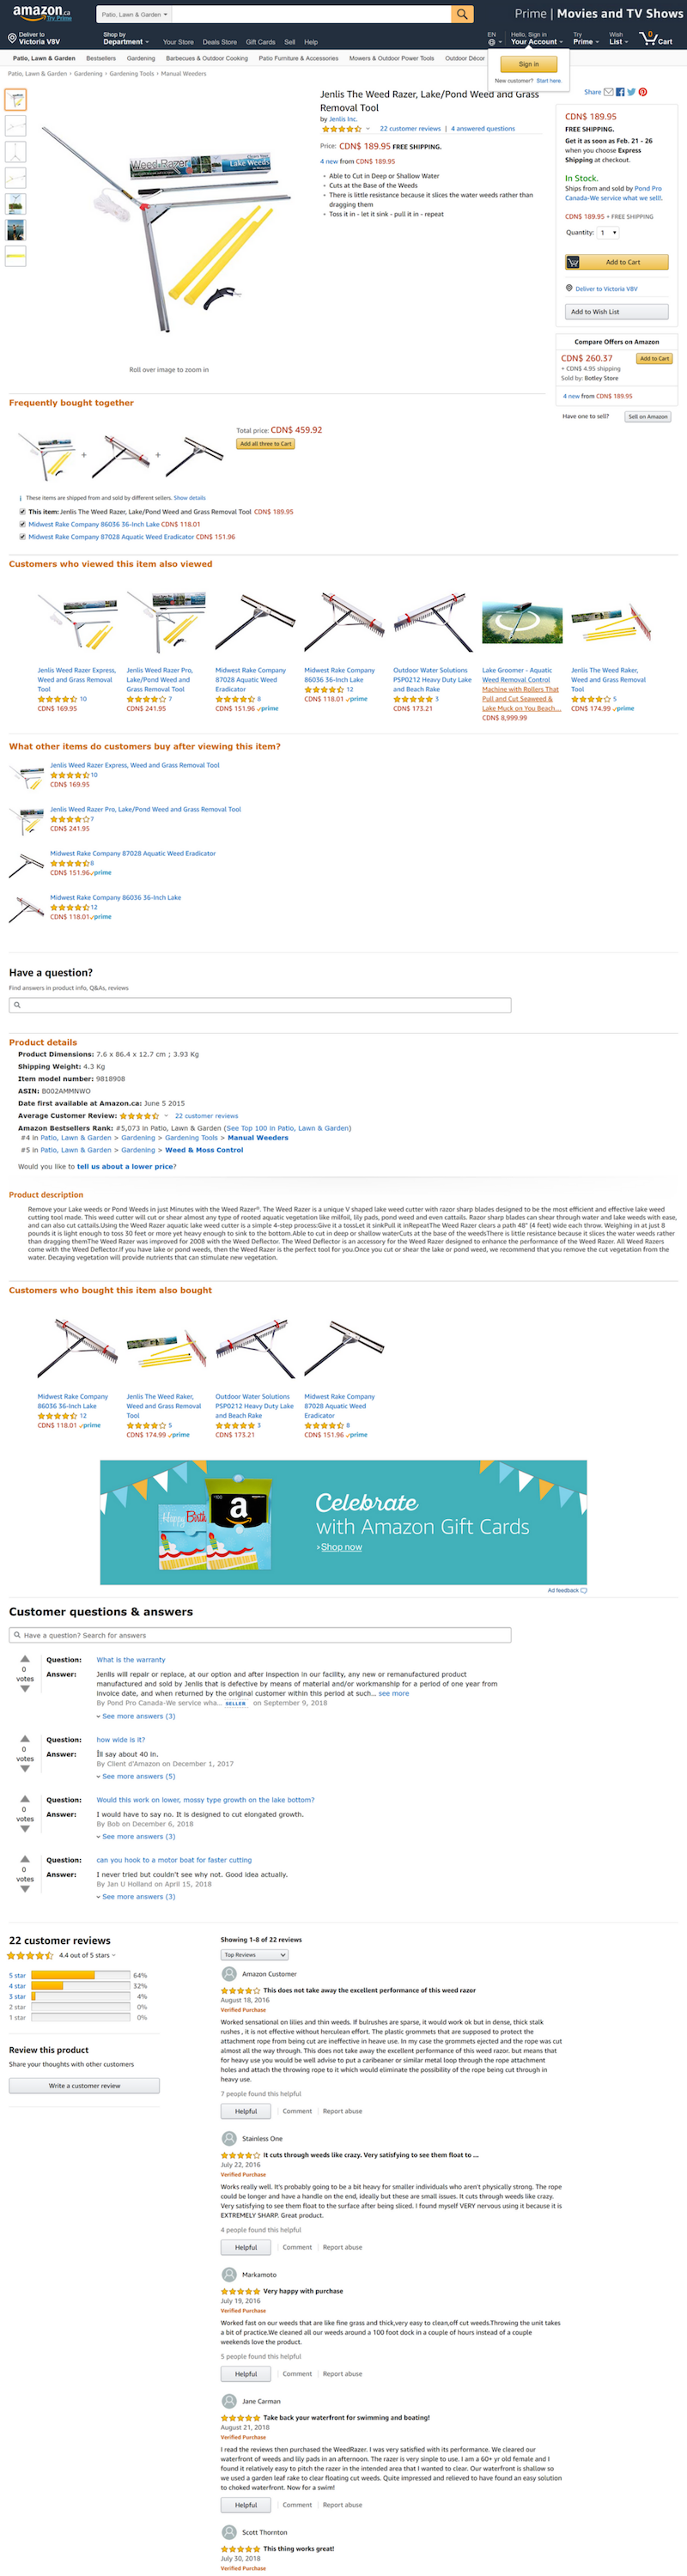 Amazon product detail page Milone and company.png